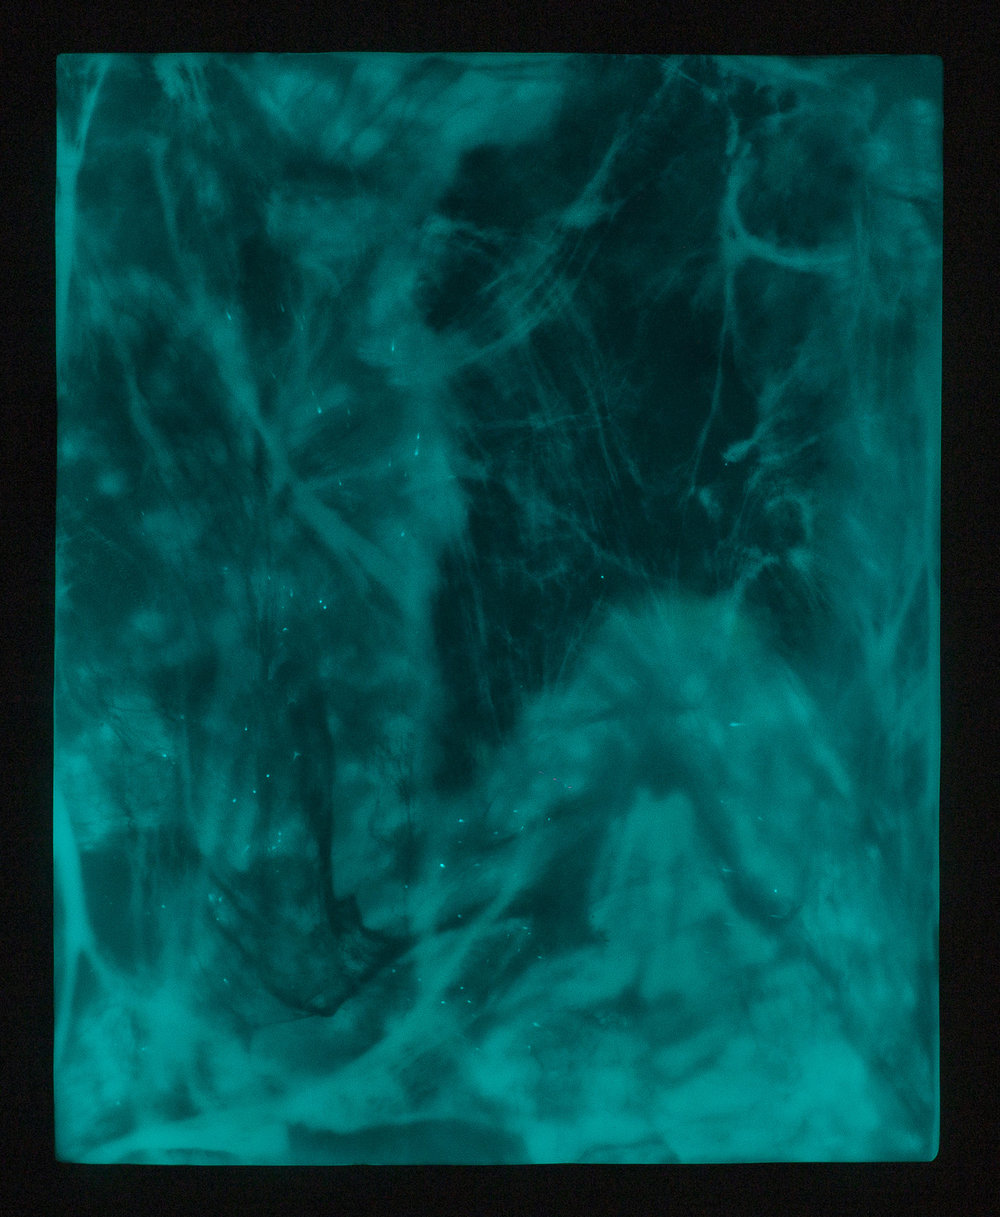 "FLAMING GODS   Phosphorescent pigment, high density foam, acrylic paint, UV  protected epoxy, vanish  48"" x 60"" 2016 Image Credit: Jamahl Richardson"